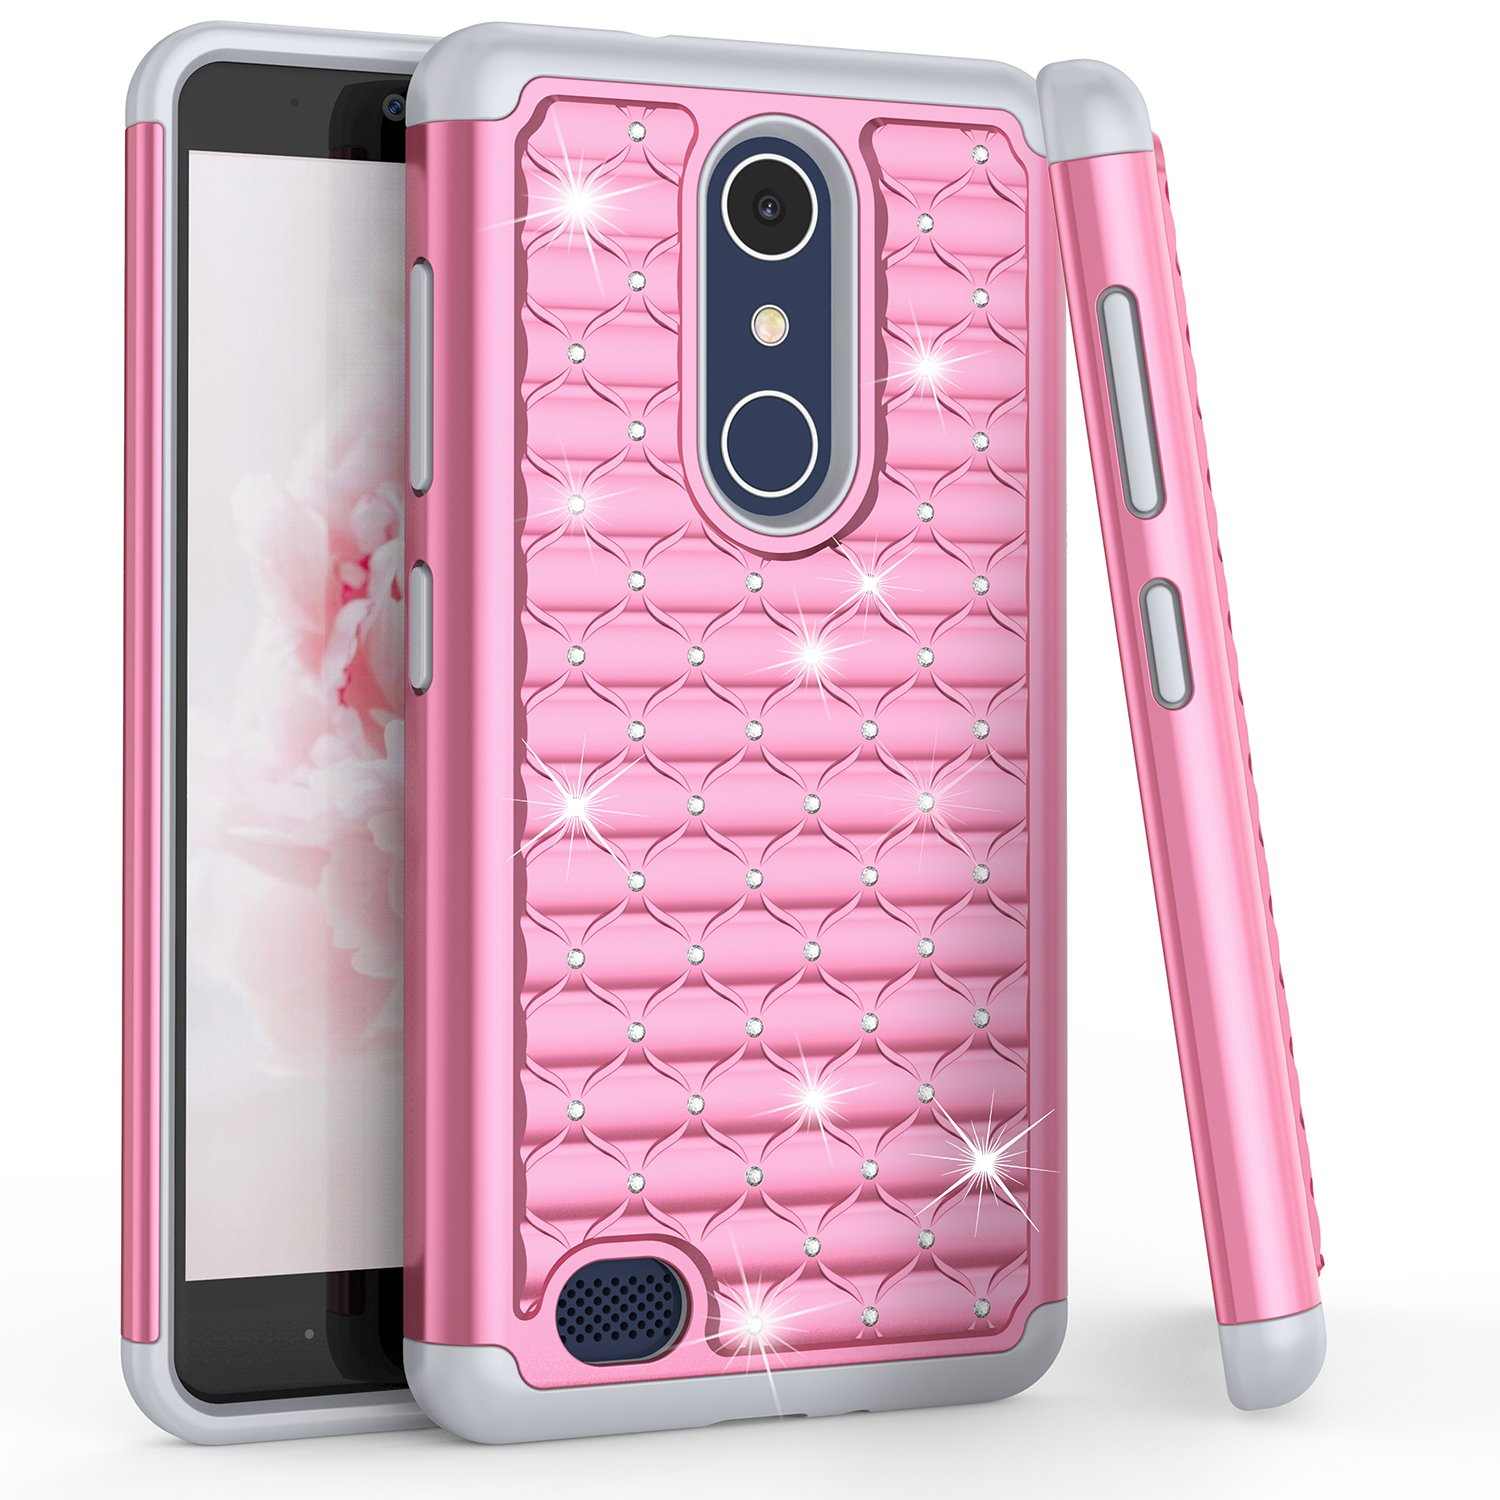 huge selection of 7a184 7533a TILL ZTE Blade X Max Case, TILL Max XL/ZMax Pro Studded Rhinestone Crystal  Bling Diamond Sparkly Luxury Shock Absorbing Hybrid Defender Rugged Slim ...